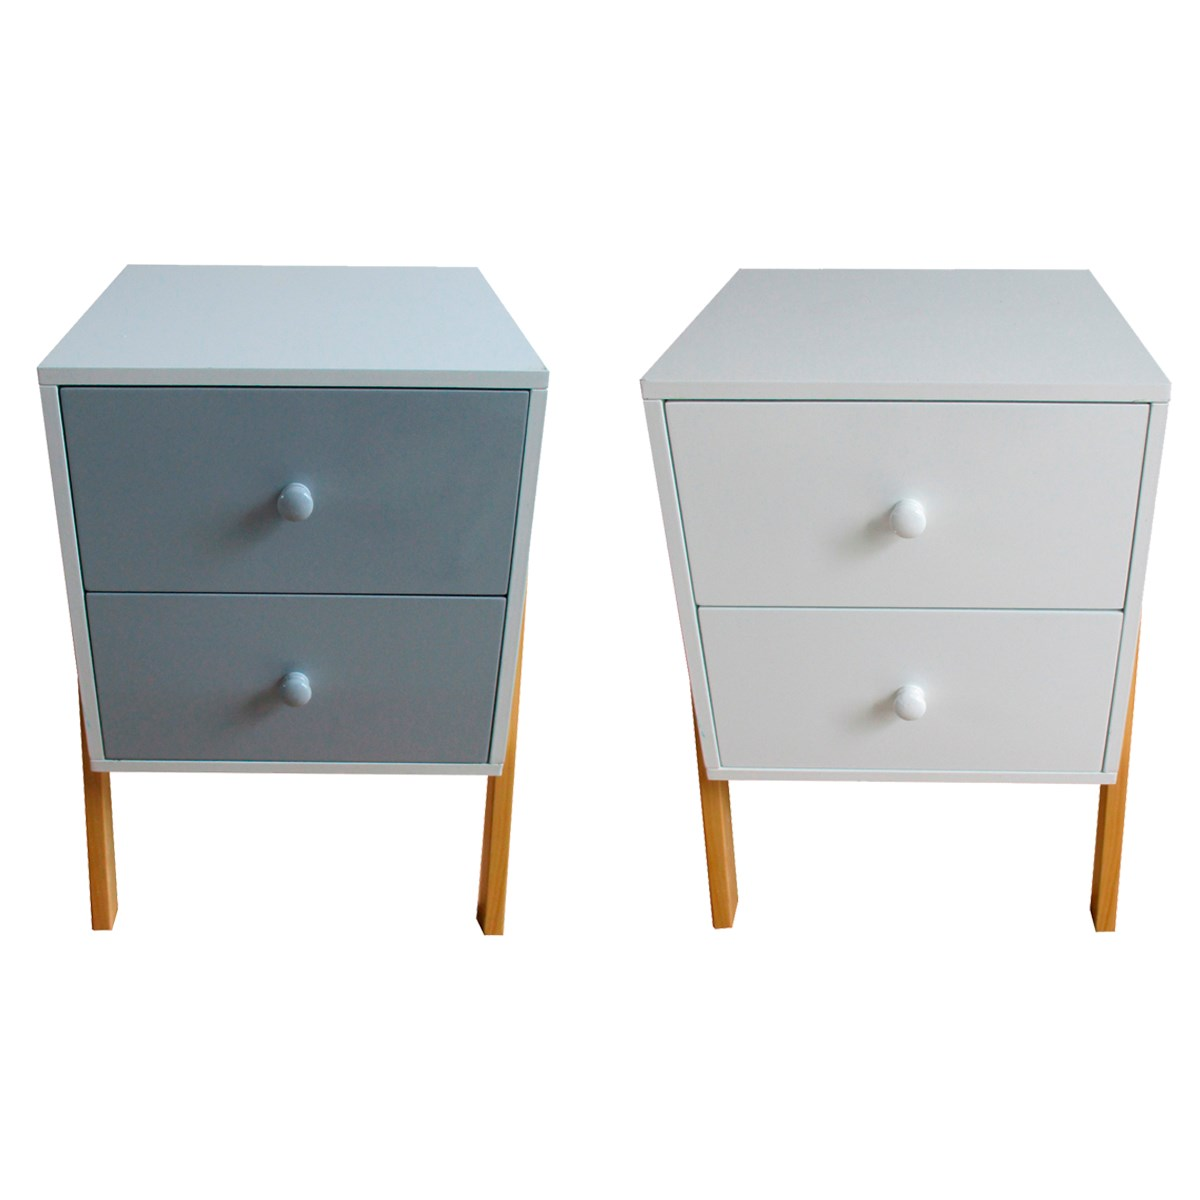 Retro Style Bedside Table Grey Or White